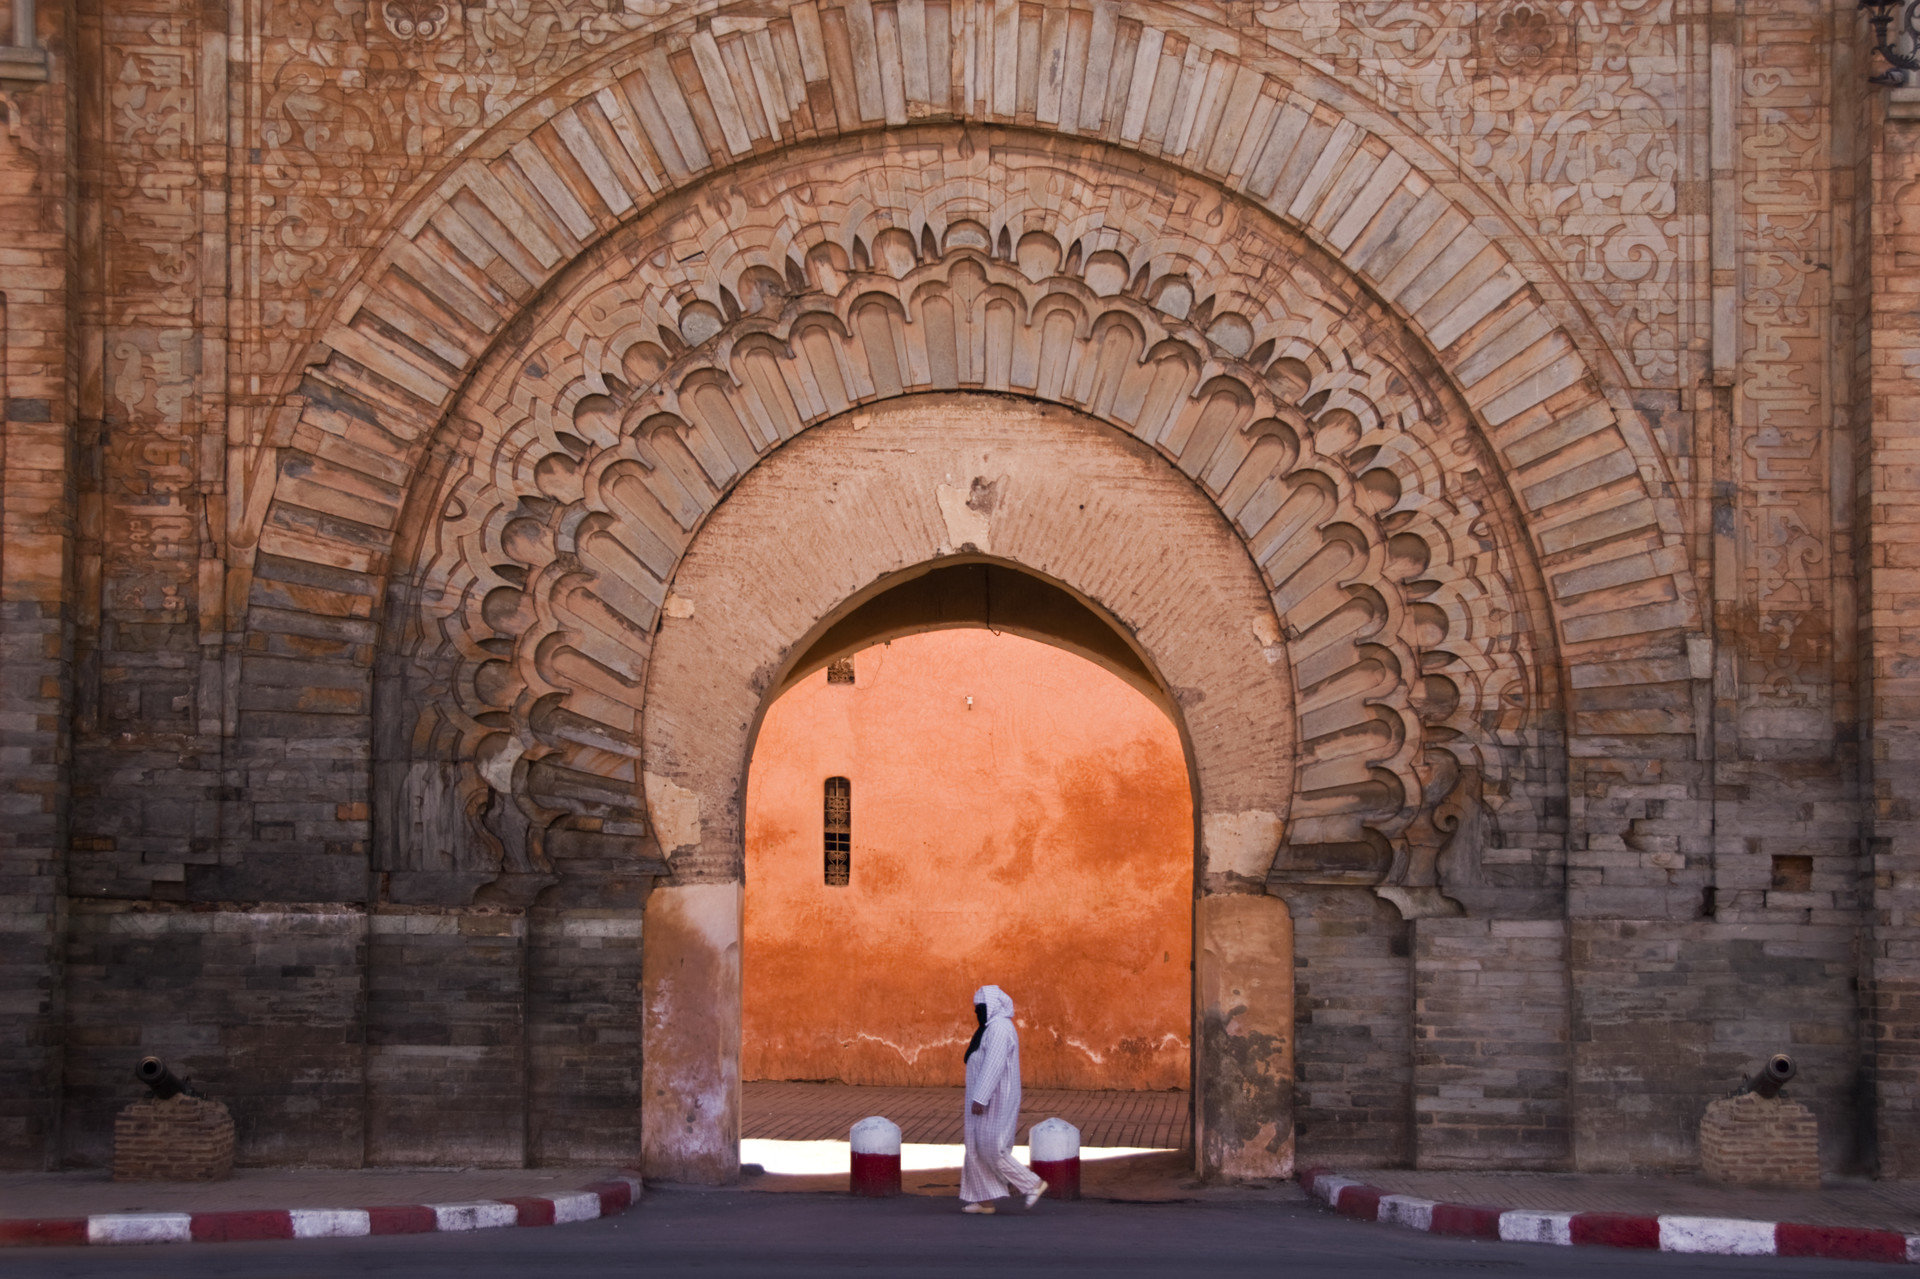 Luxury Travel Romance Trip Ideas building outdoor arch stone Architecture wall place of worship ancient history monastery chapel brick temple Church facade cathedral symmetry abbey crypt old